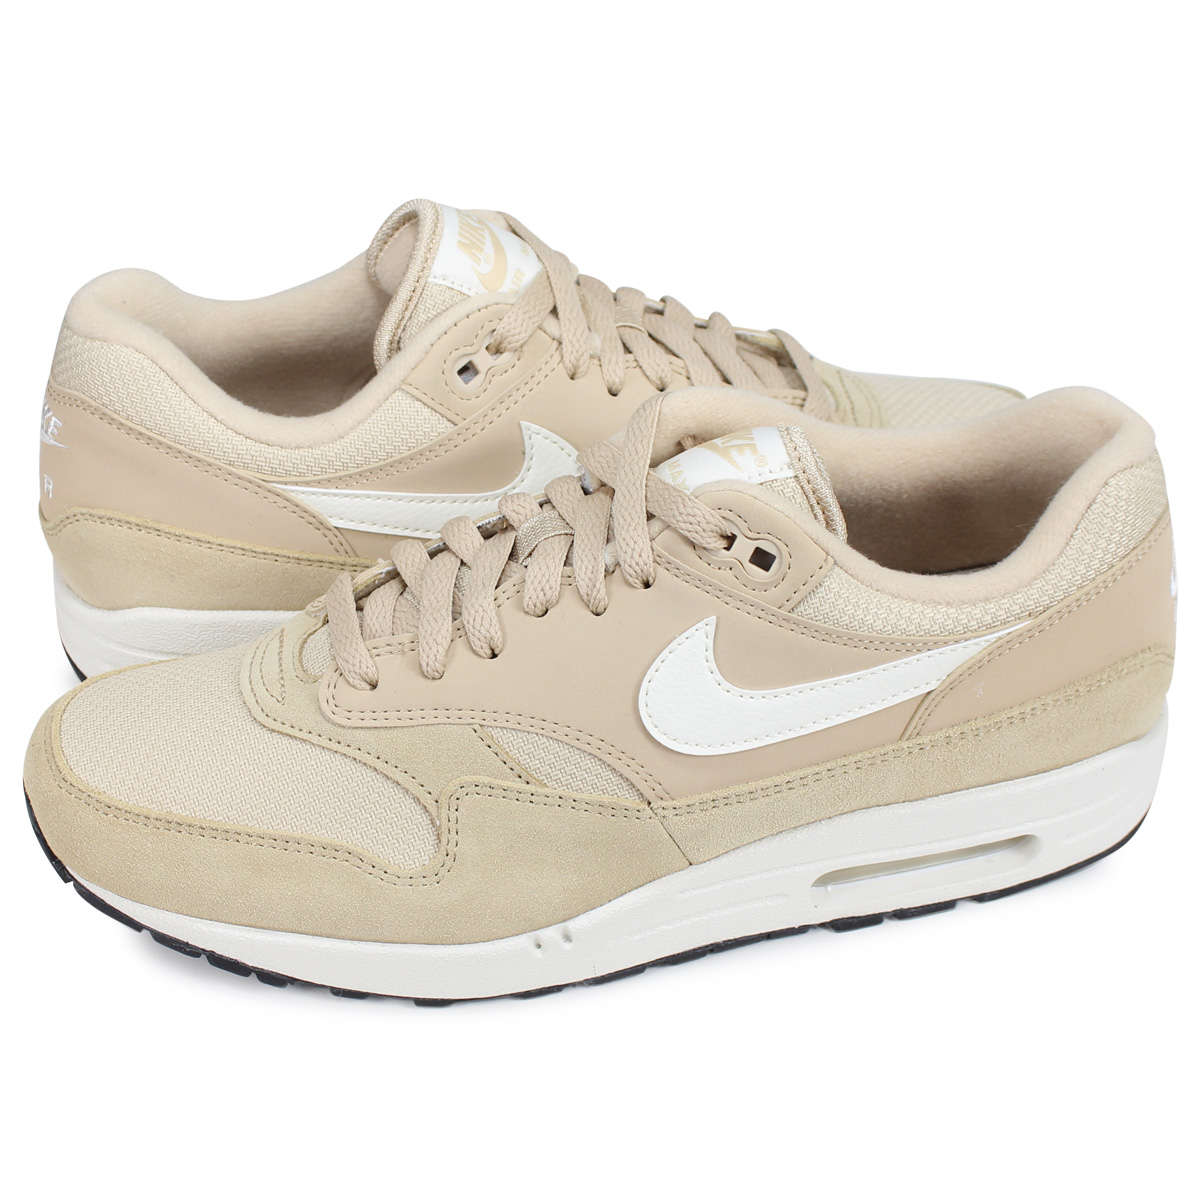 Nike NIKE Air Max 1 sneakers men AIR MAX 1 pink beige AH8145 202 [193]